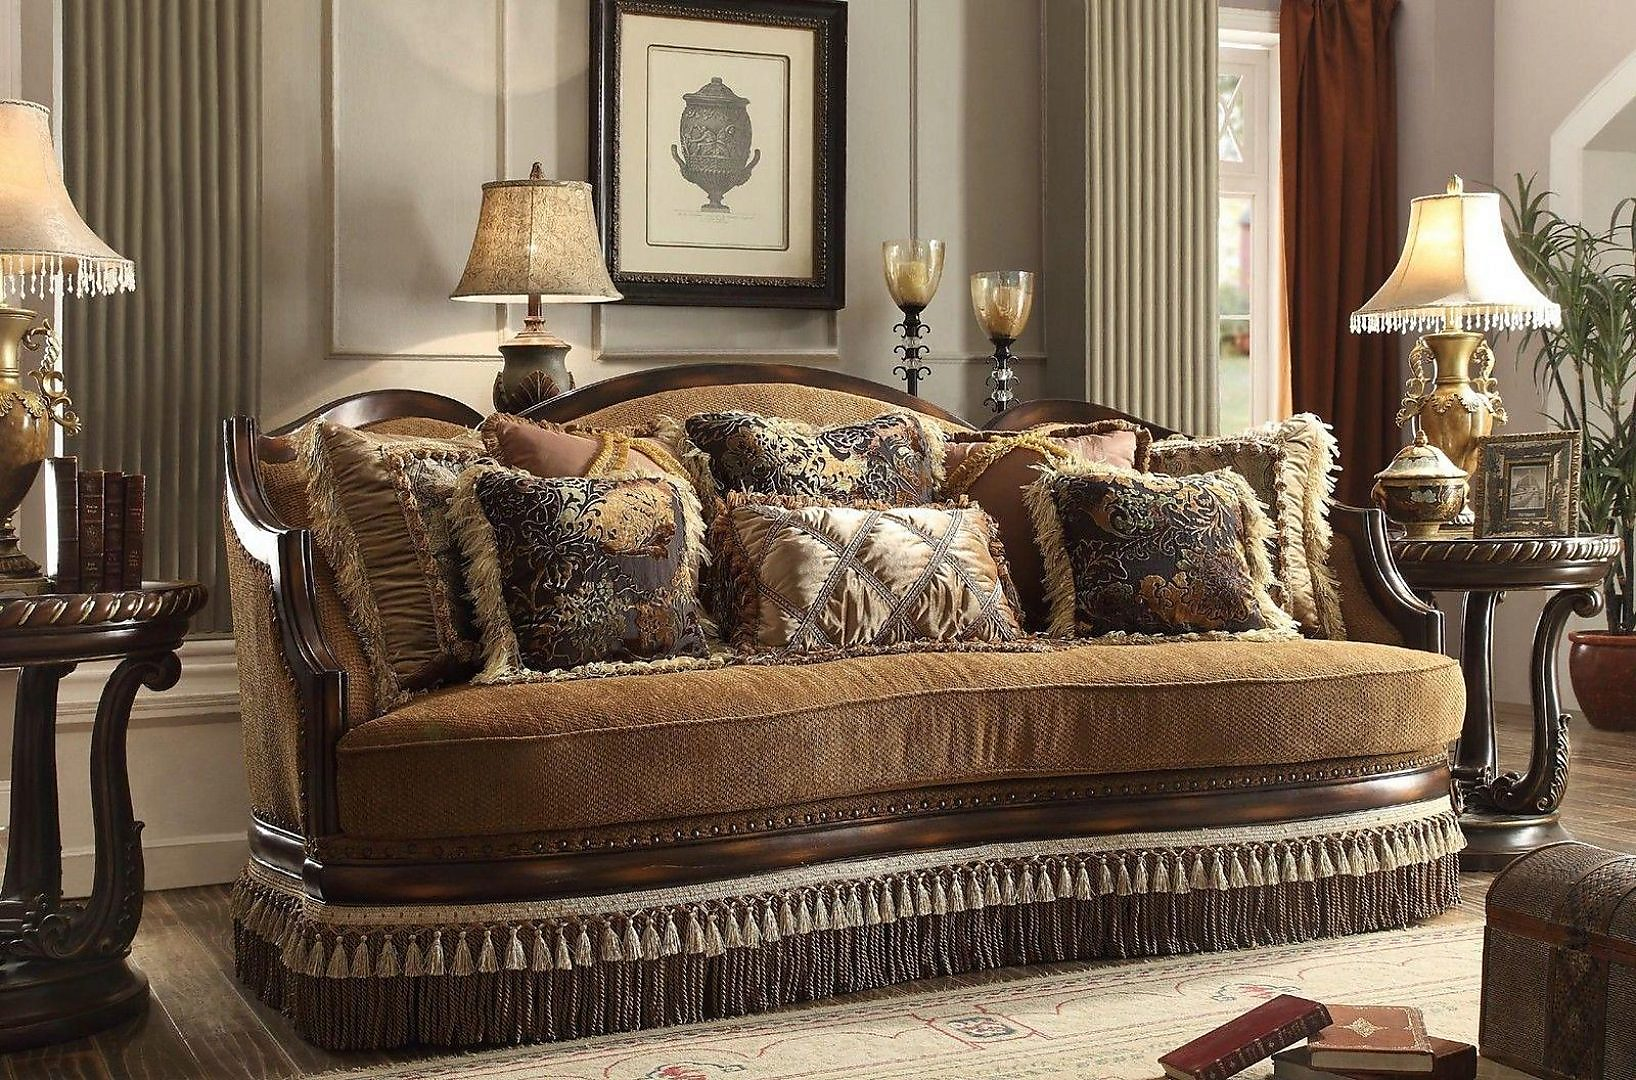 Traditional Luxury HD-9344-S Sofa in Warm Brown by Homey Design